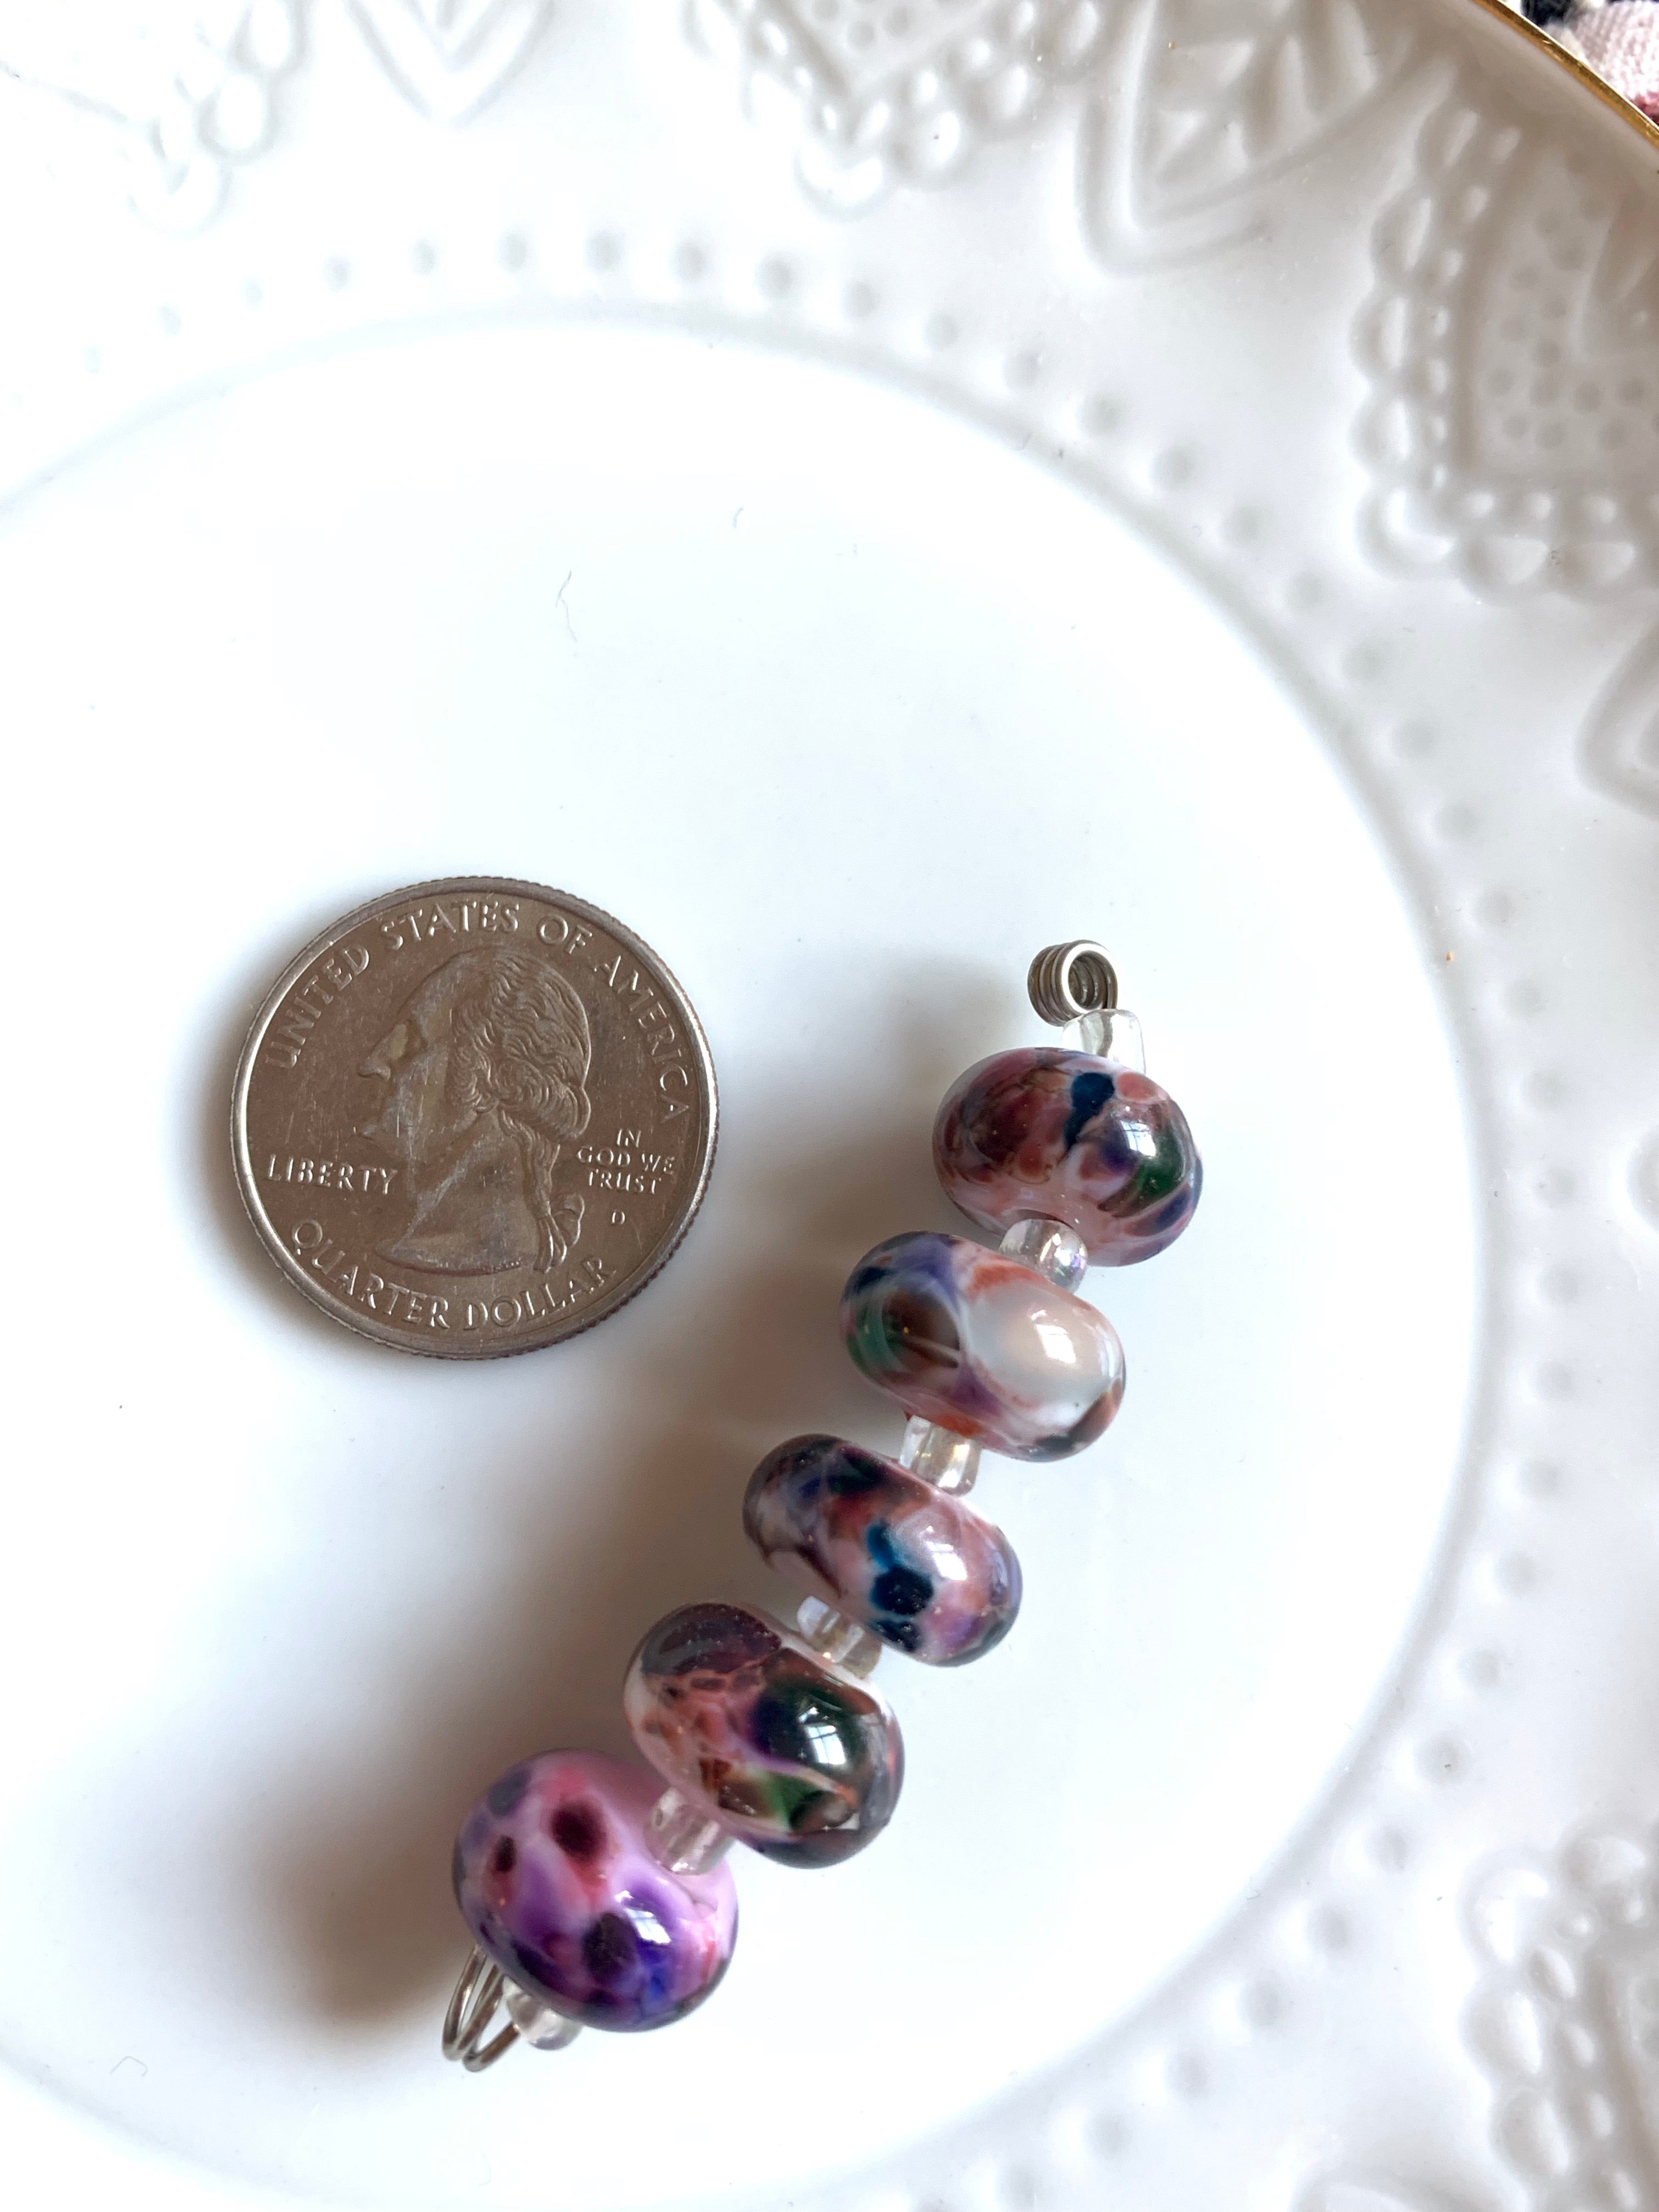 Set of 5 small rondelle shaped lampwork beads in deep shades of violet